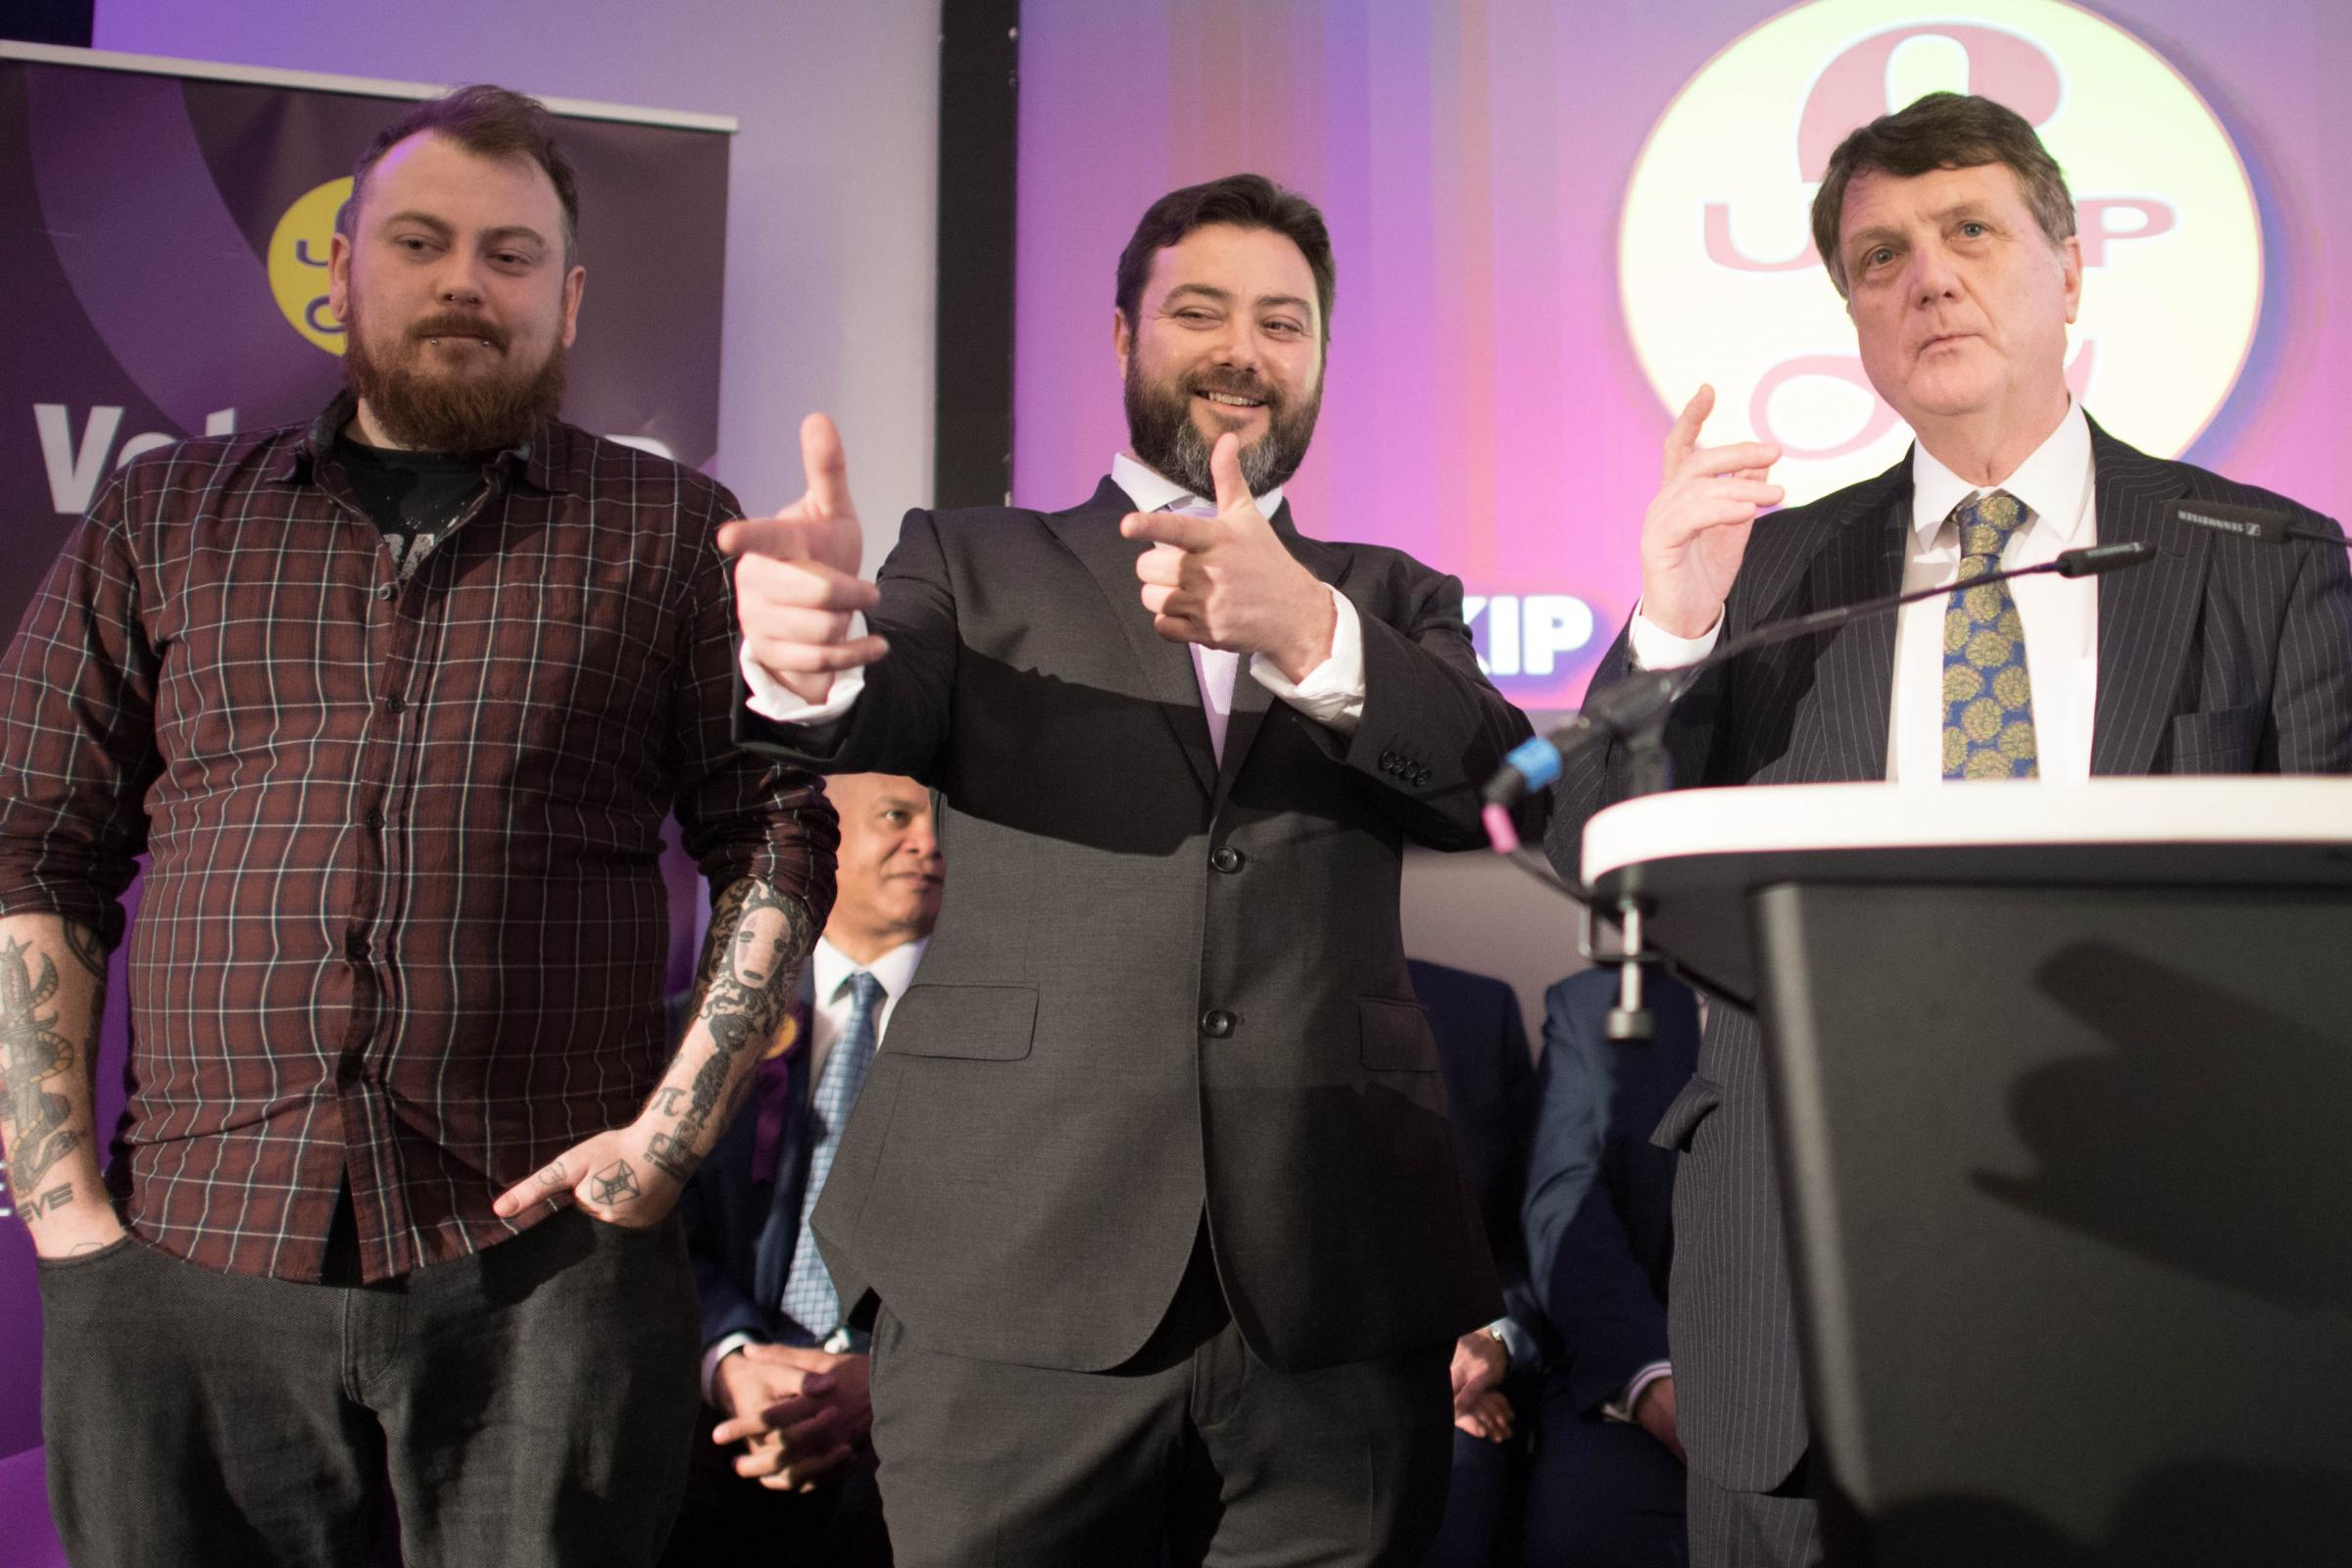 Ukip candidate Carl Benjamin gestures during the launch of the party's European Parliament election campaign